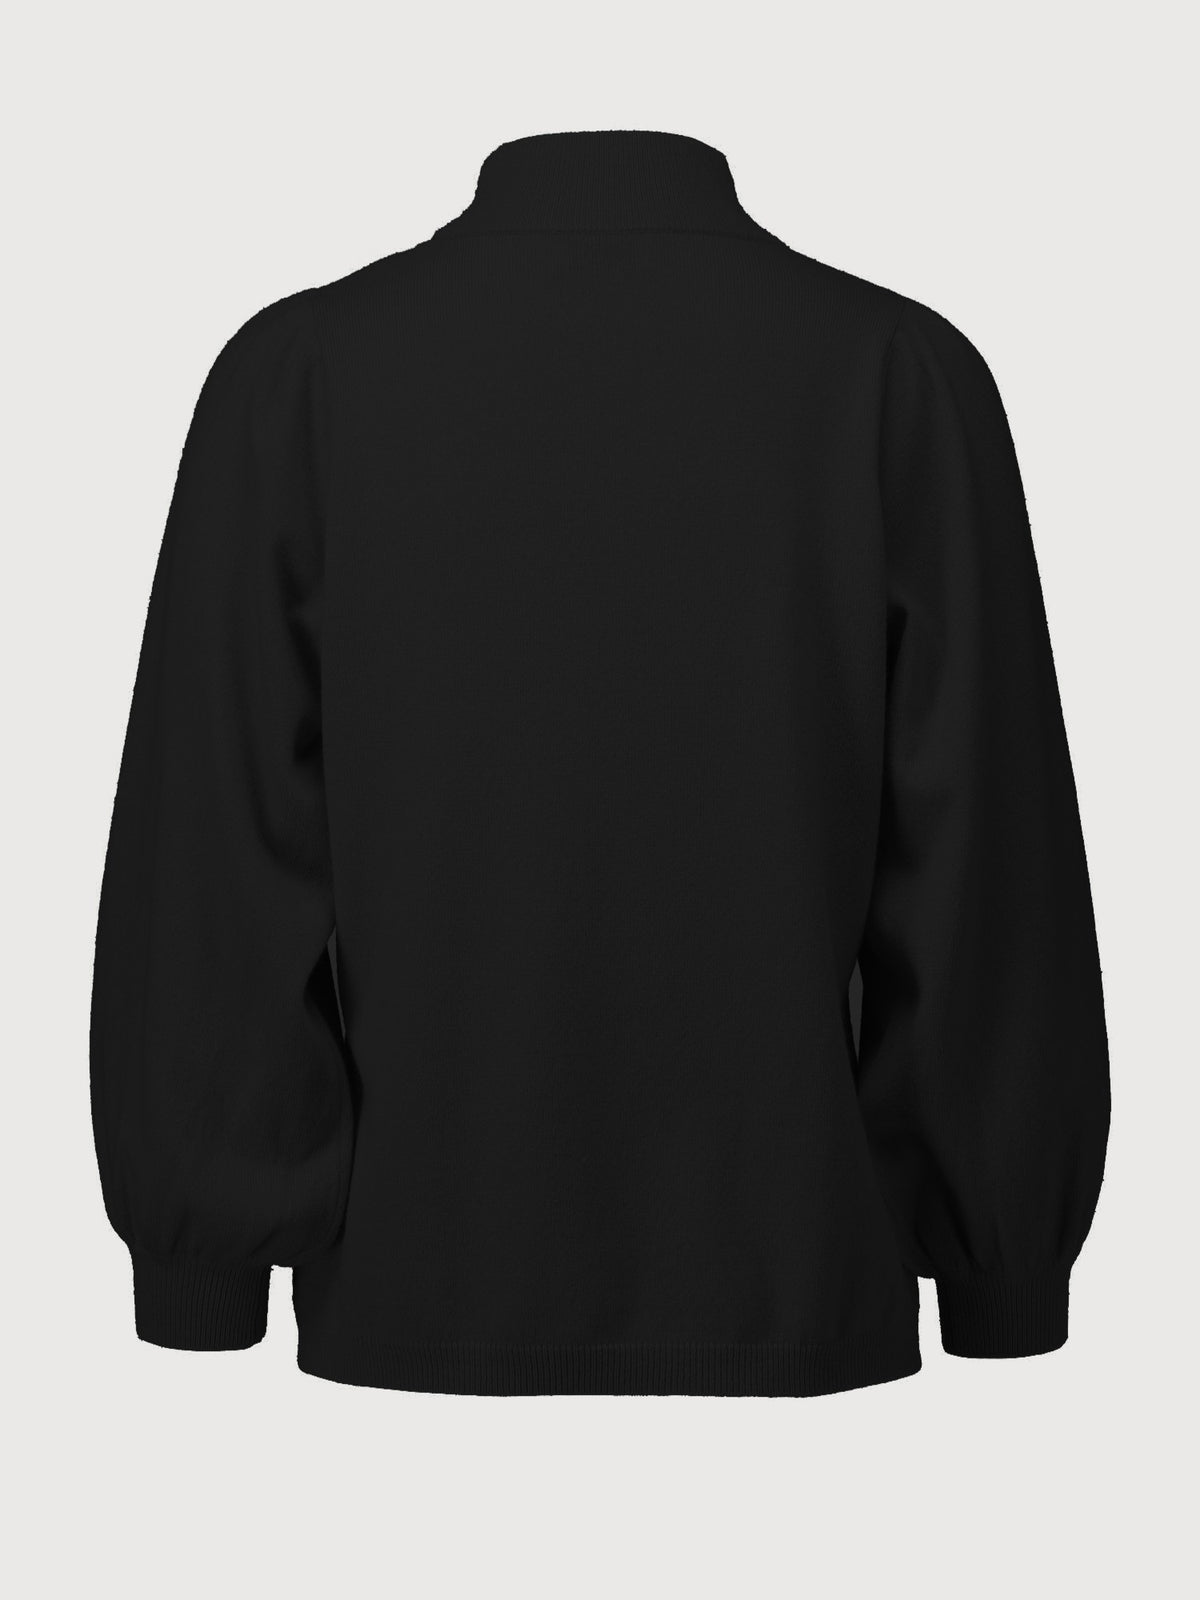 Allude - High neck Sweater | Black